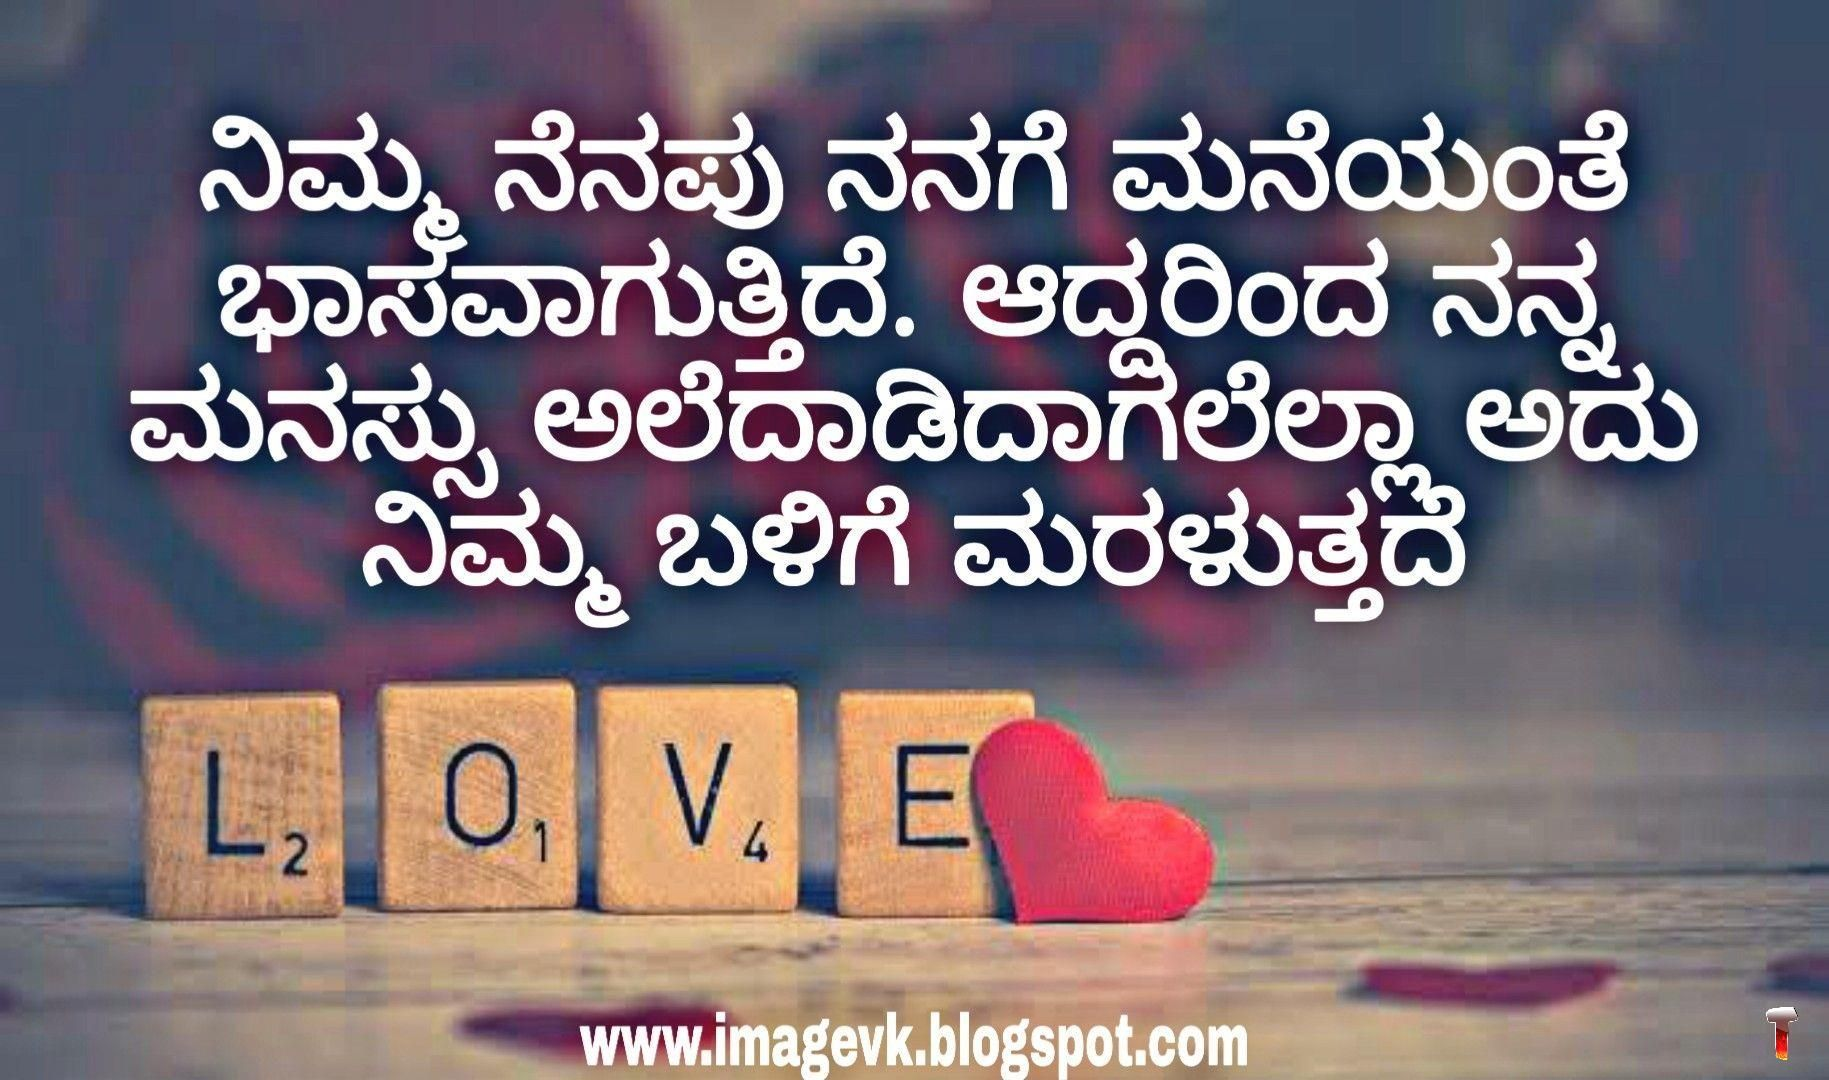 Love Quotes In Kannada Love Failure Quotes In Kannada Good Night Love Quotes In Kannada Romantic In 2021 Love Quotes In Kannada Love Failure Quotes Good Night Love Quotes